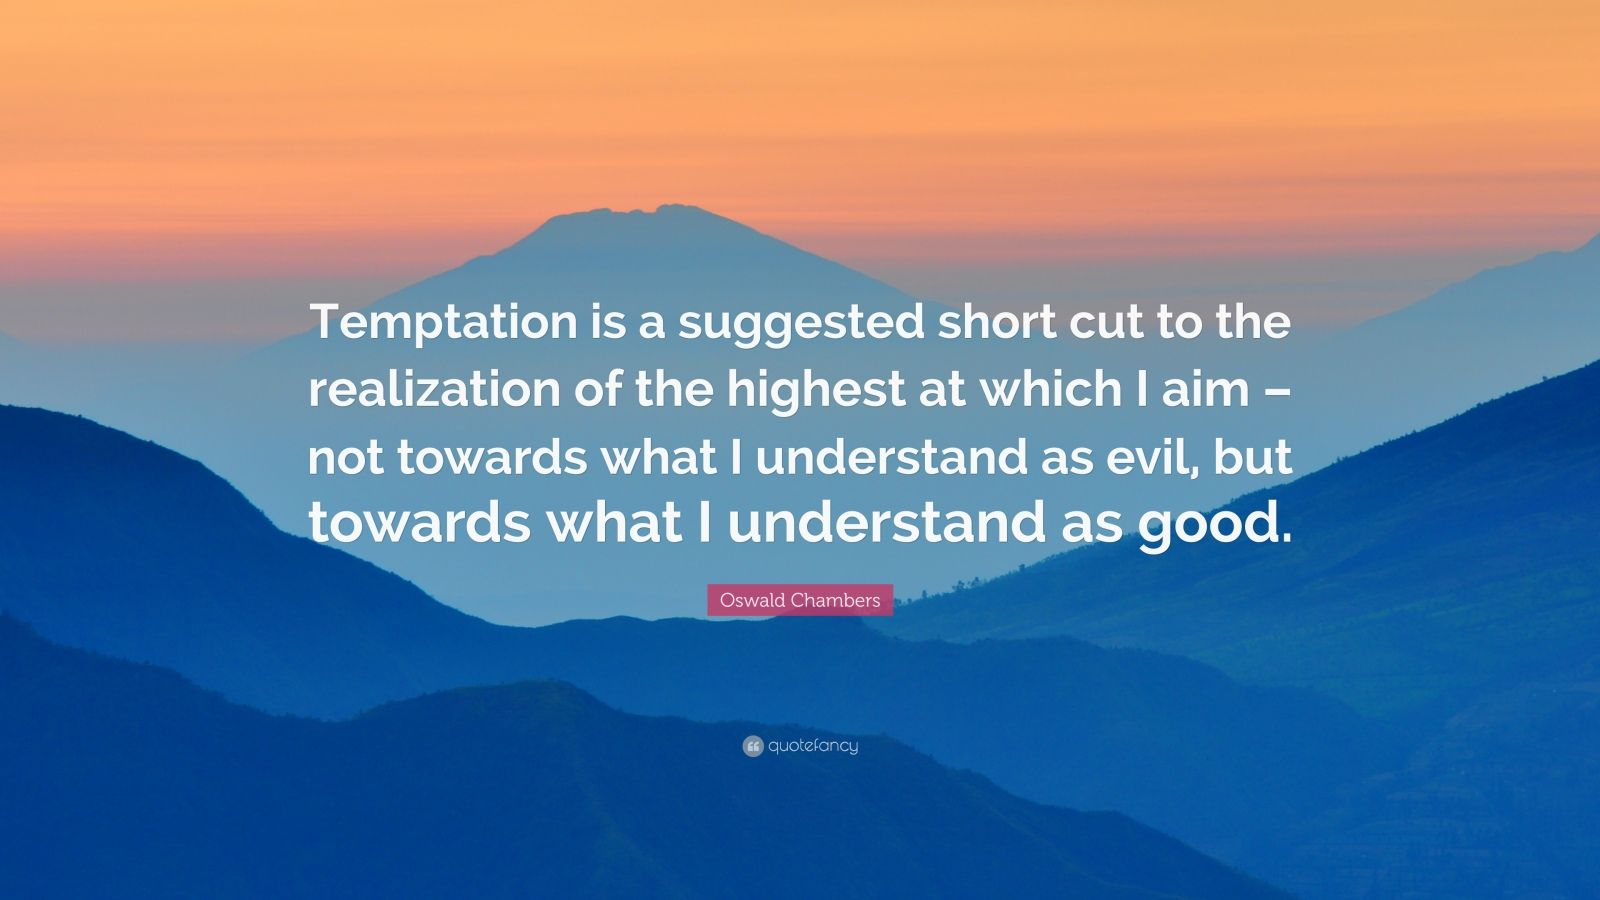 """Oswald Chambers Quote: """"Temptation is a suggested short cut to the realization of the highest at which I aim – not towards what I understand as evil, but towards what I understand as good."""""""